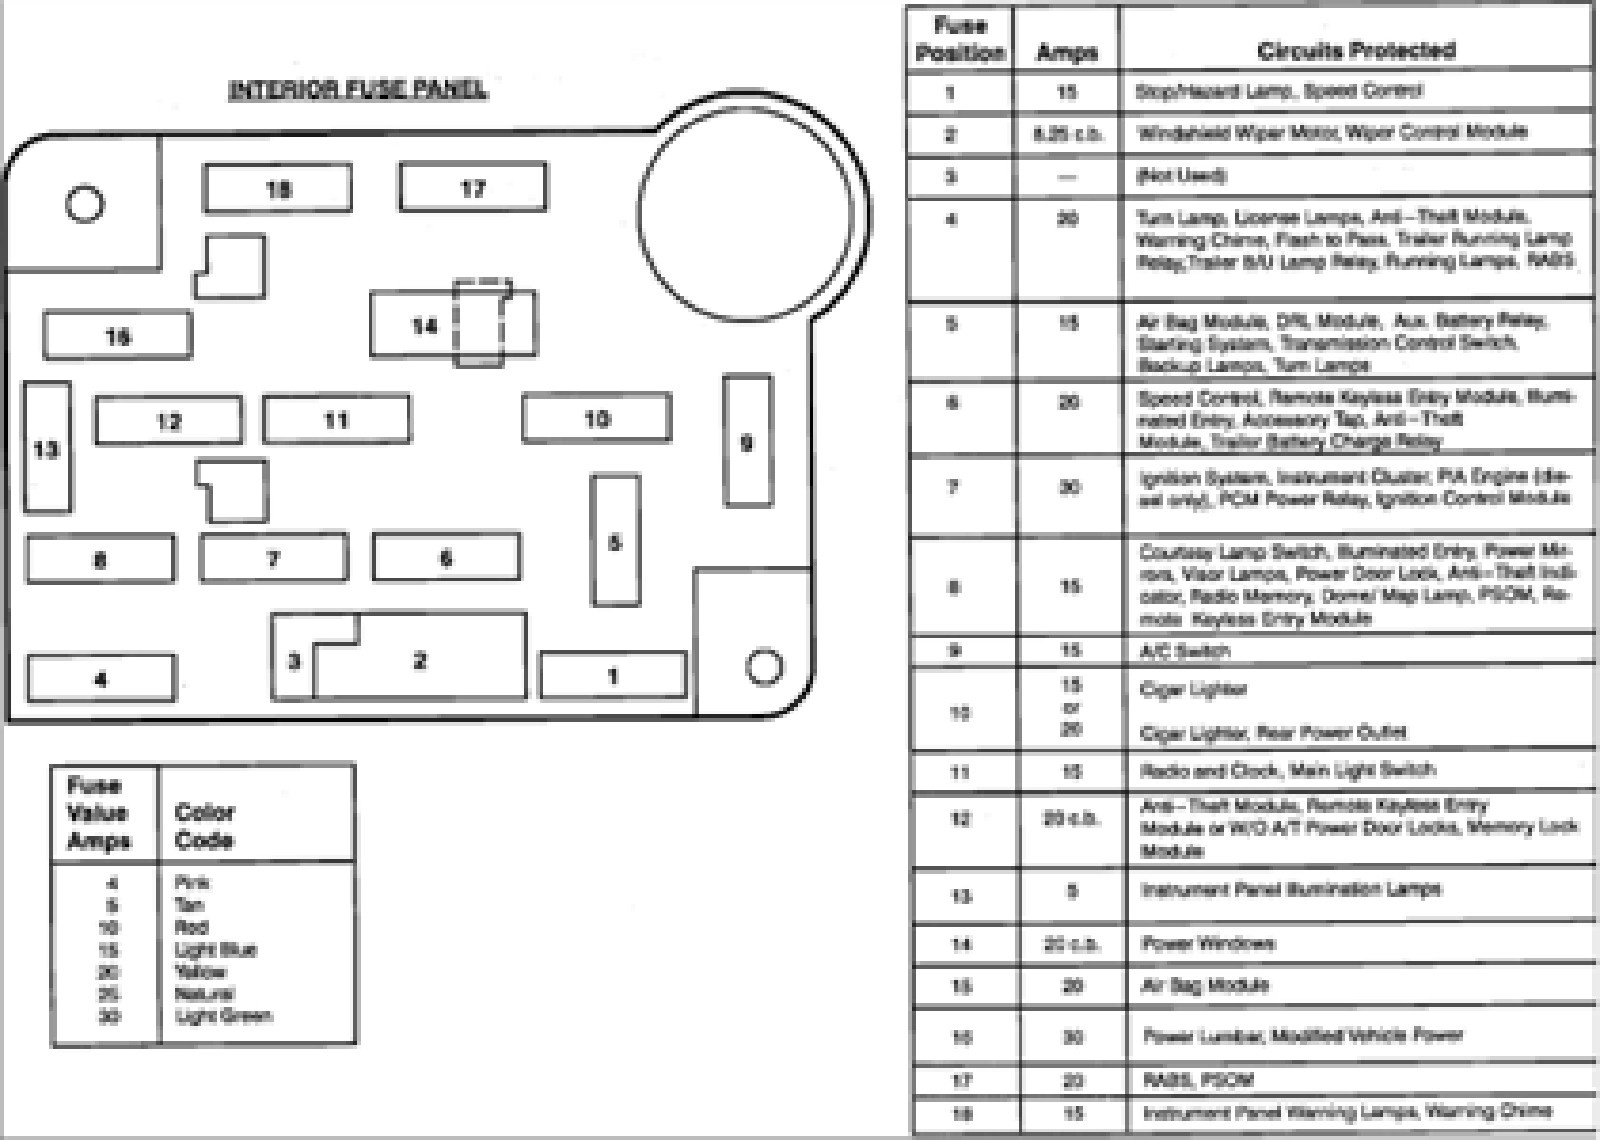 1990 Ford Crown Victoria Fuse Box Wiring Library 02 Vic Diagram 1997 Detailed Schematics Rh Mrskindsclass Com 05